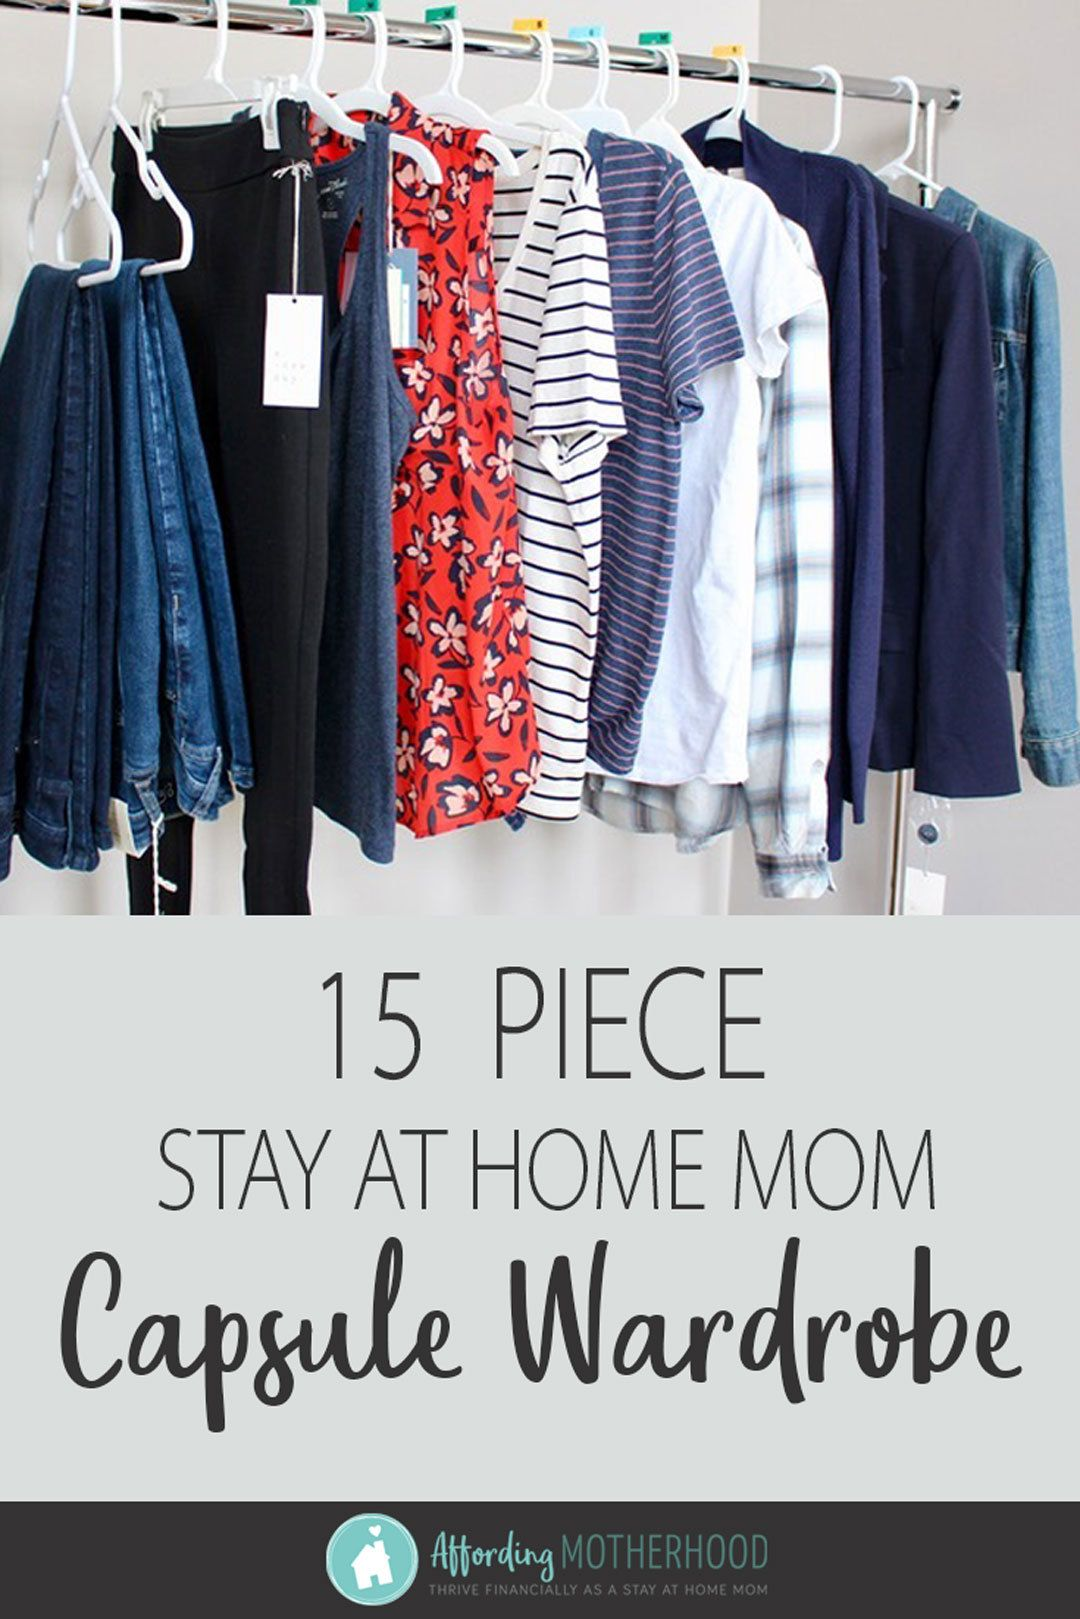 As a stay at home mom, you can still feel confident and comfortable in